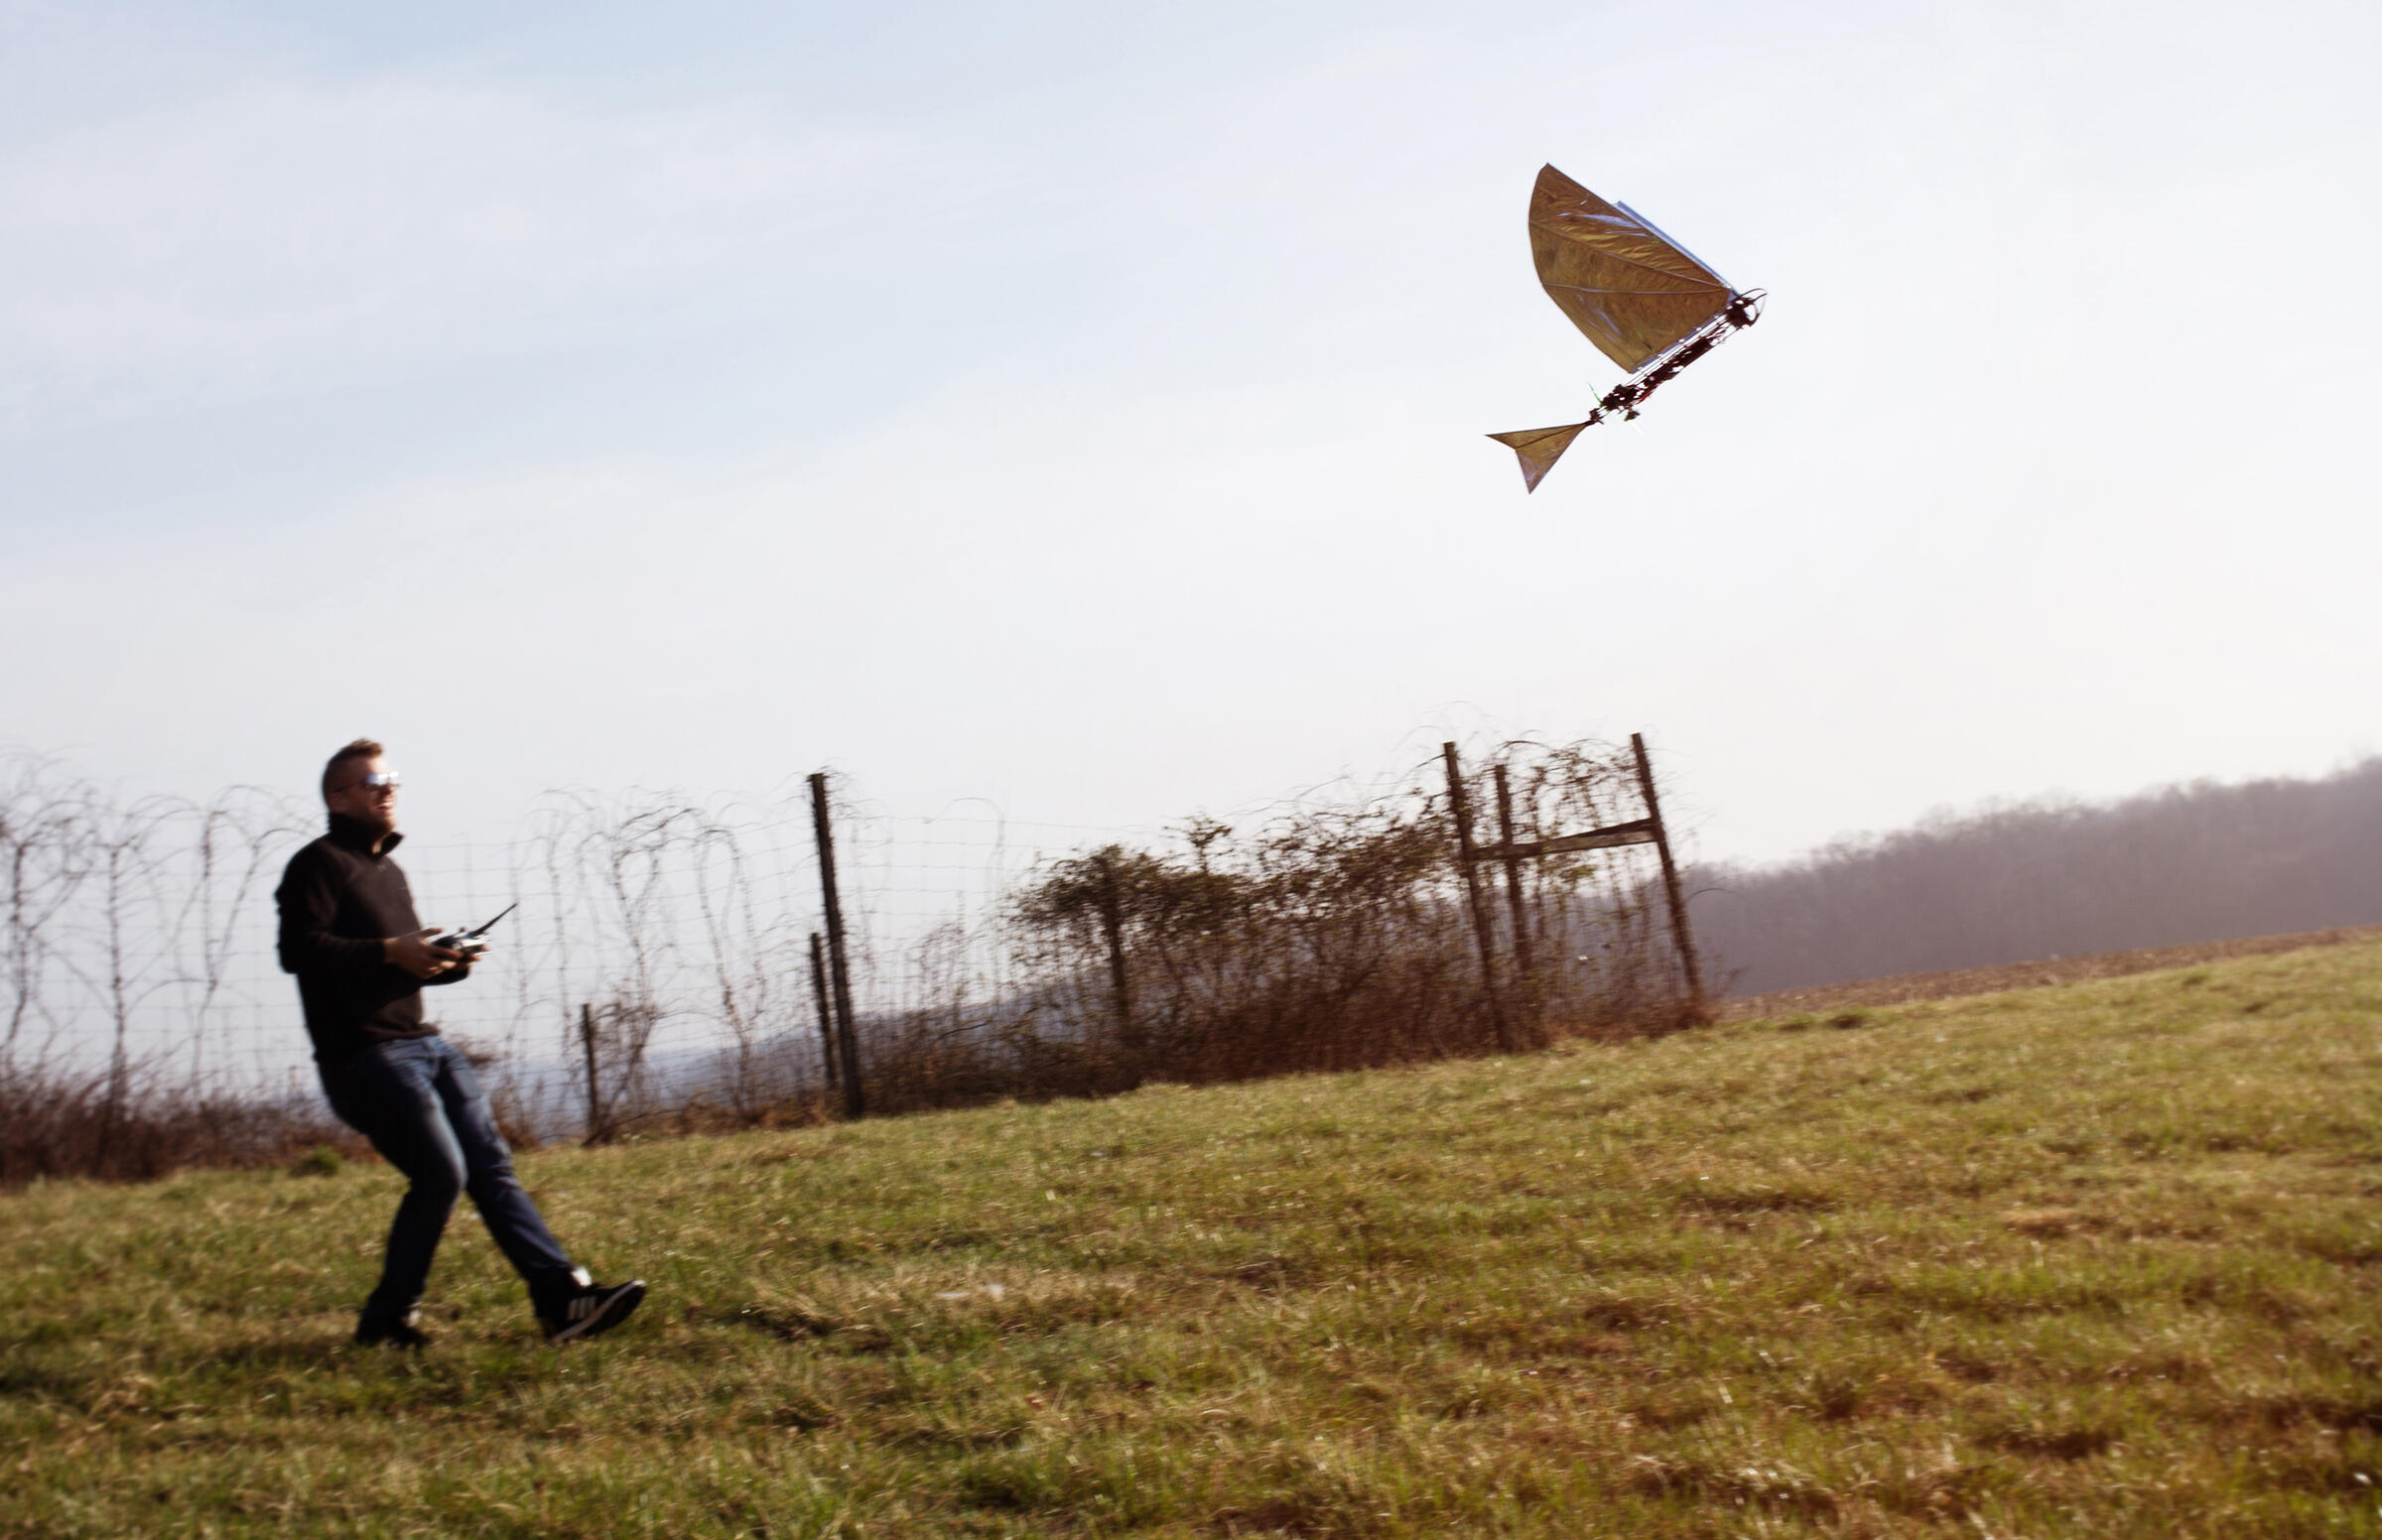 Robo Raven III airborn launched by Luke Roberts, PhD students in the Department of Mechanical Engineering at the University of Maryland, College Park. Mike Fernandez/Audubon